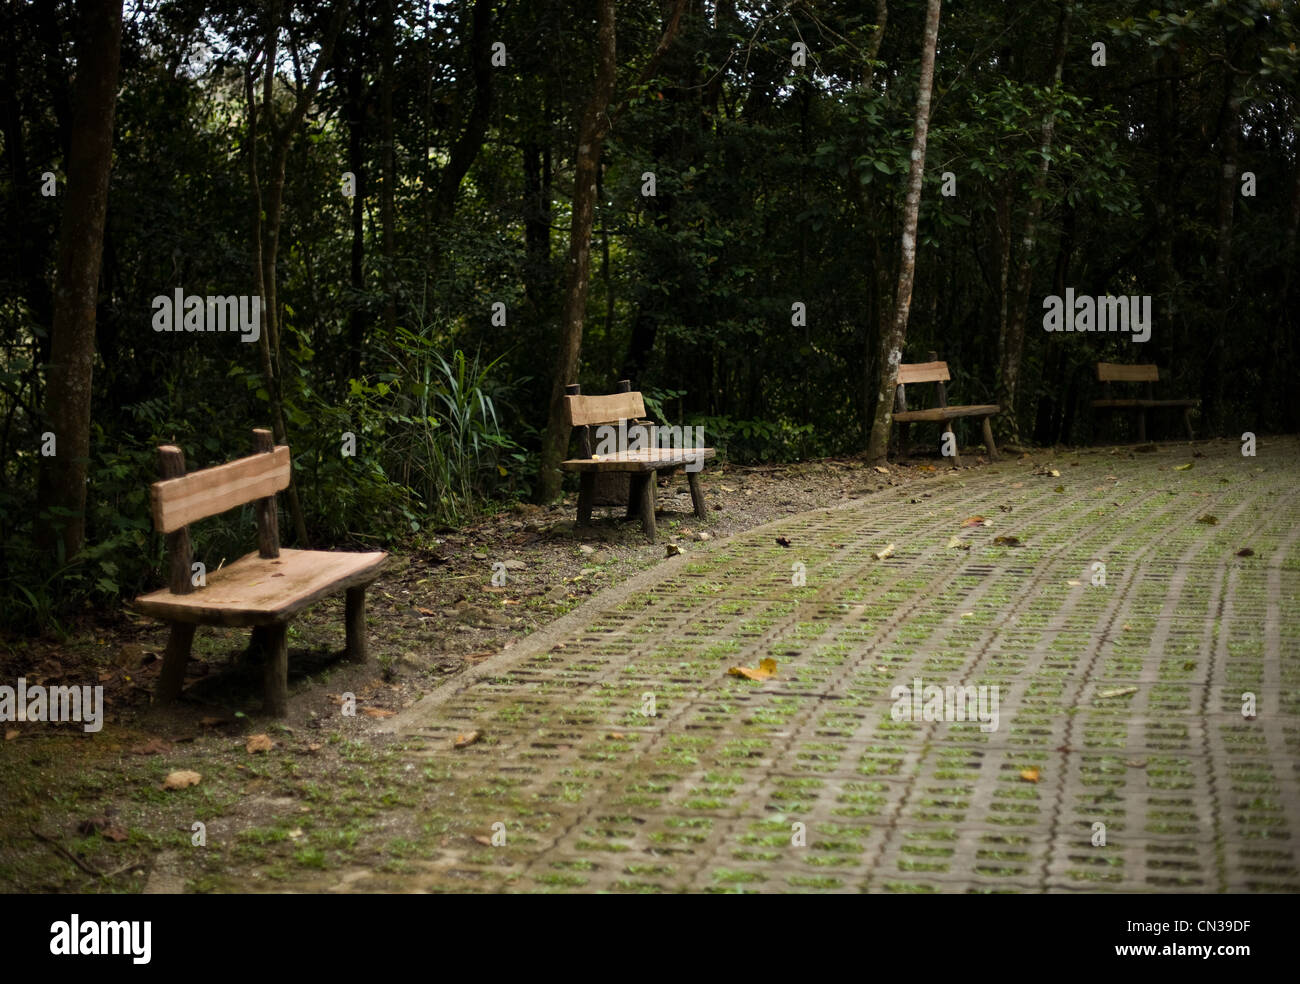 Benches in forest, Mt Kinabalu, Malaysia - Stock Image